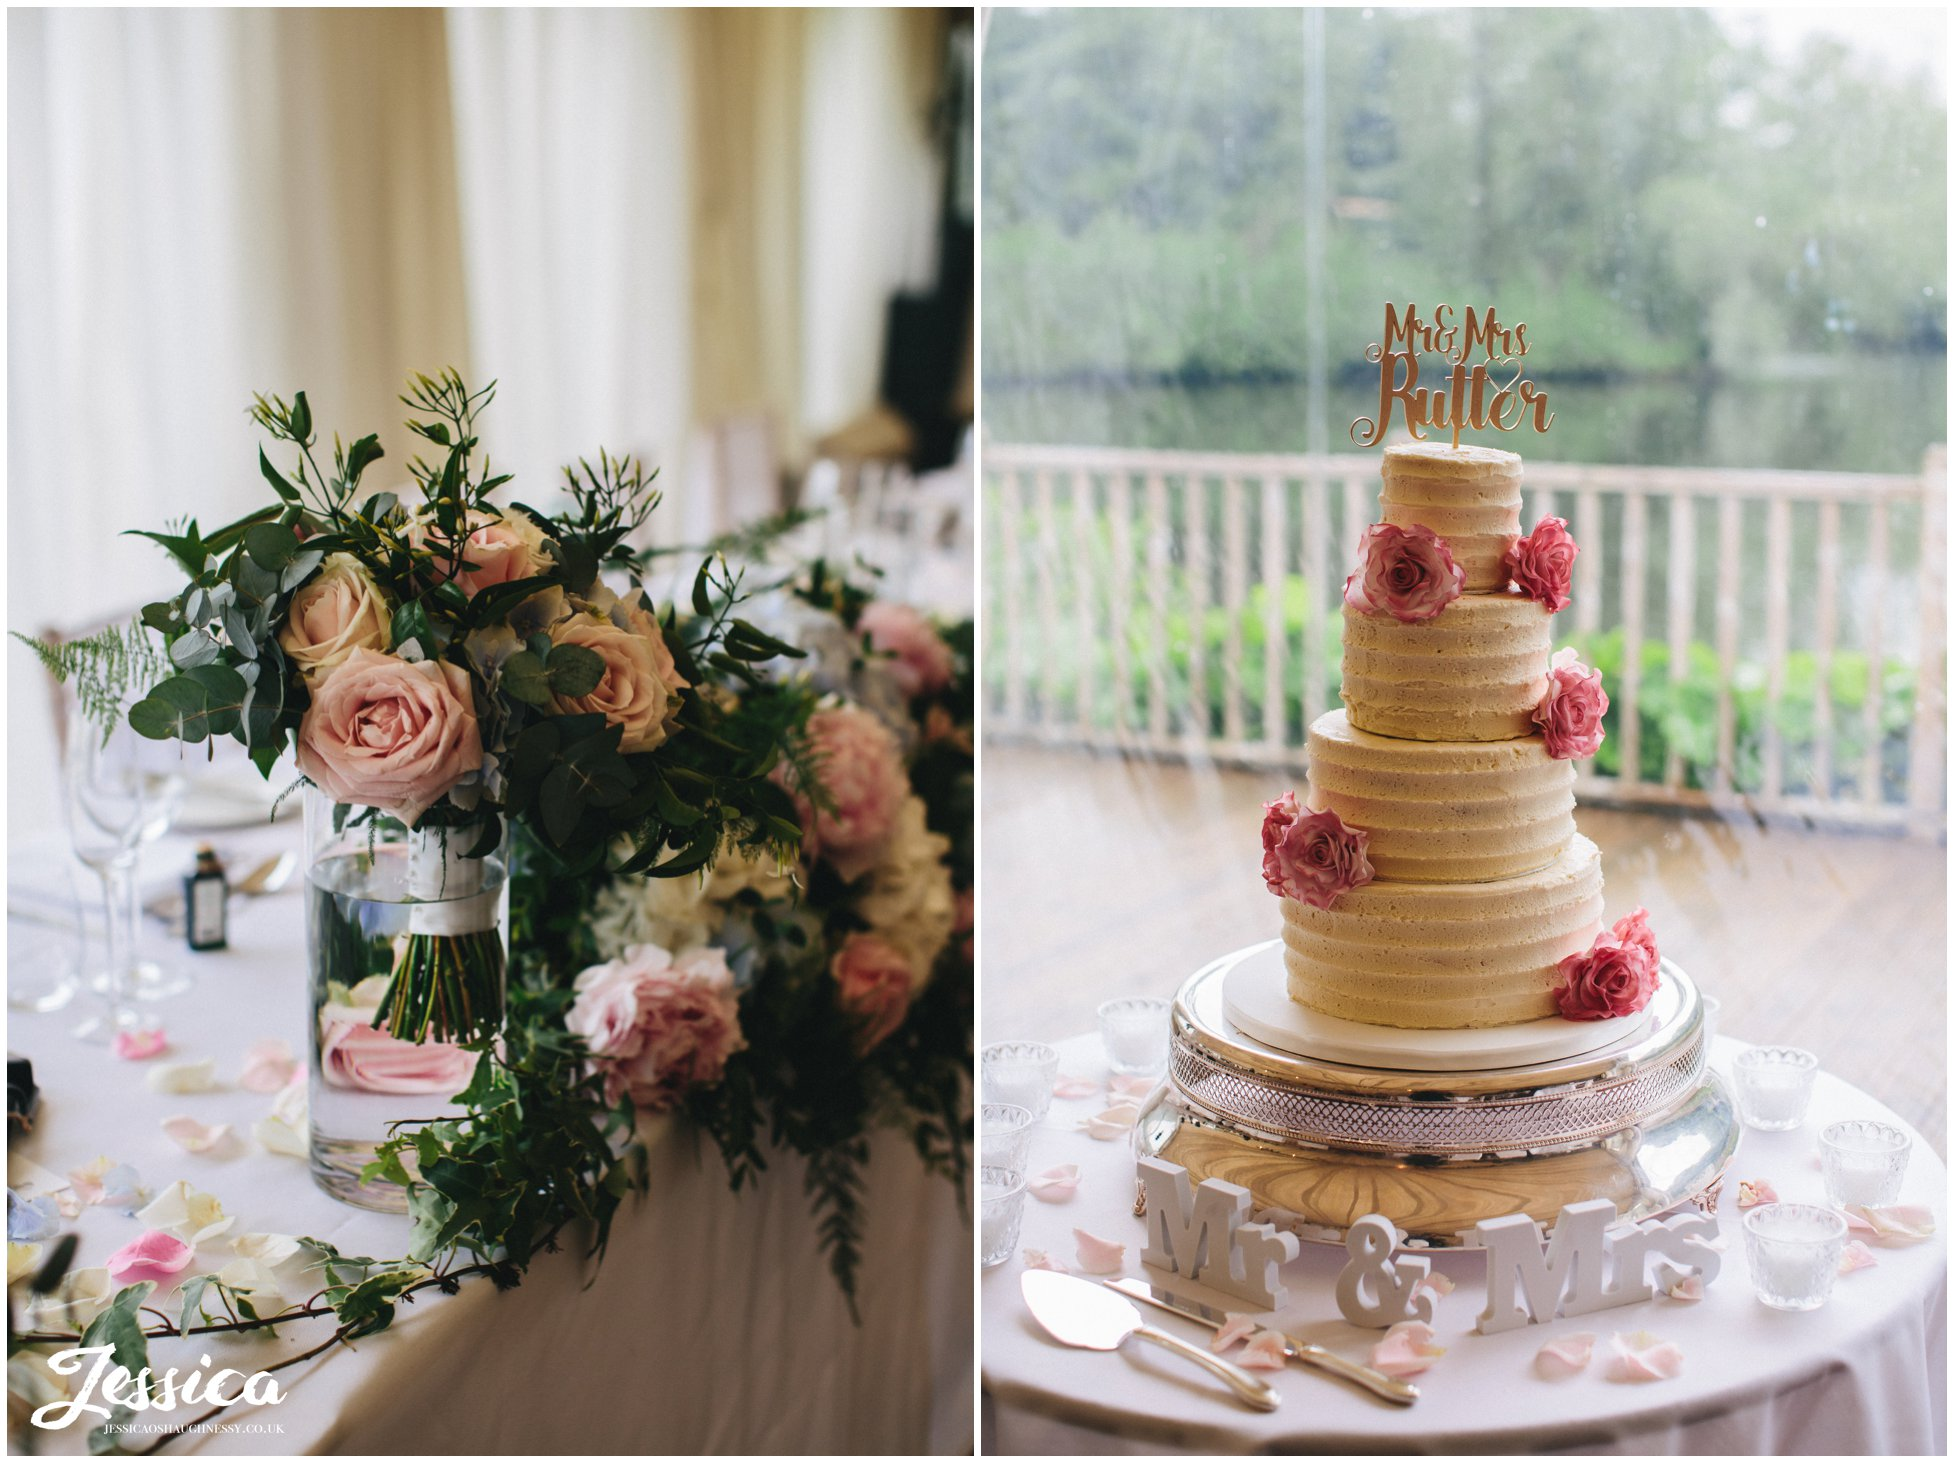 wedding cake and flowers decorate the lakeside marquee at thornton manor, a wirral wedding venue